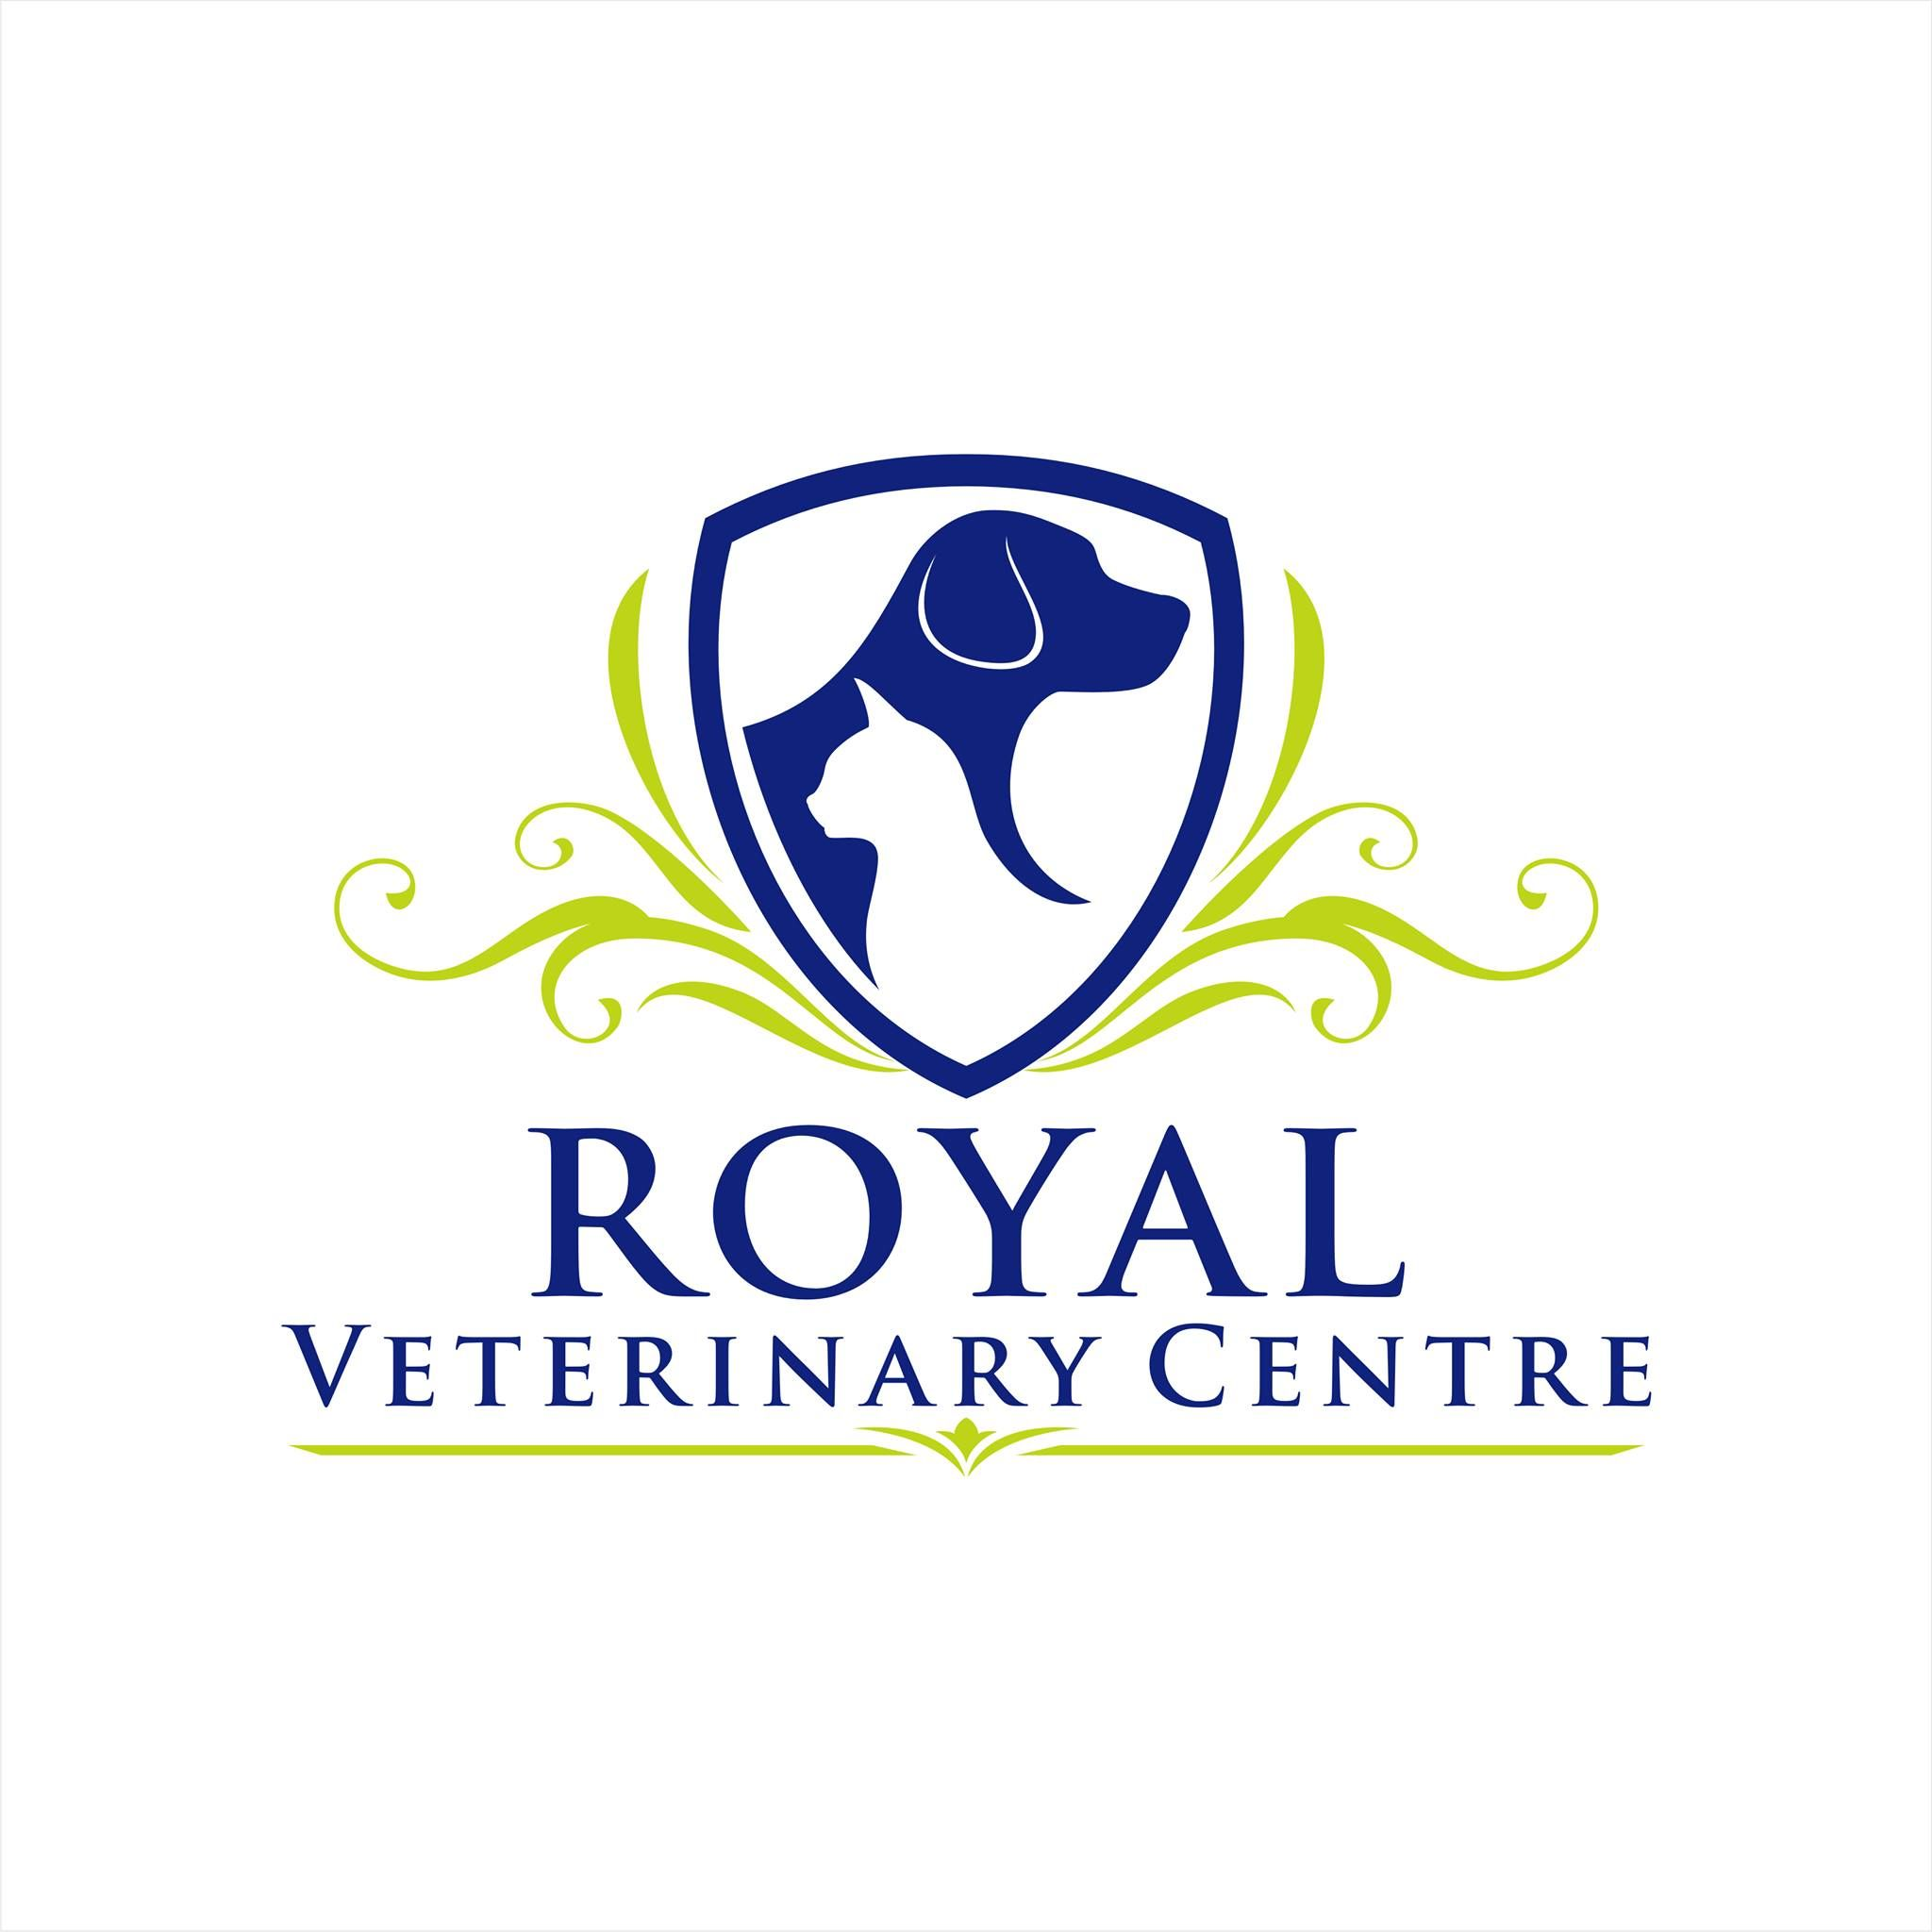 Royal Veterinary Centre